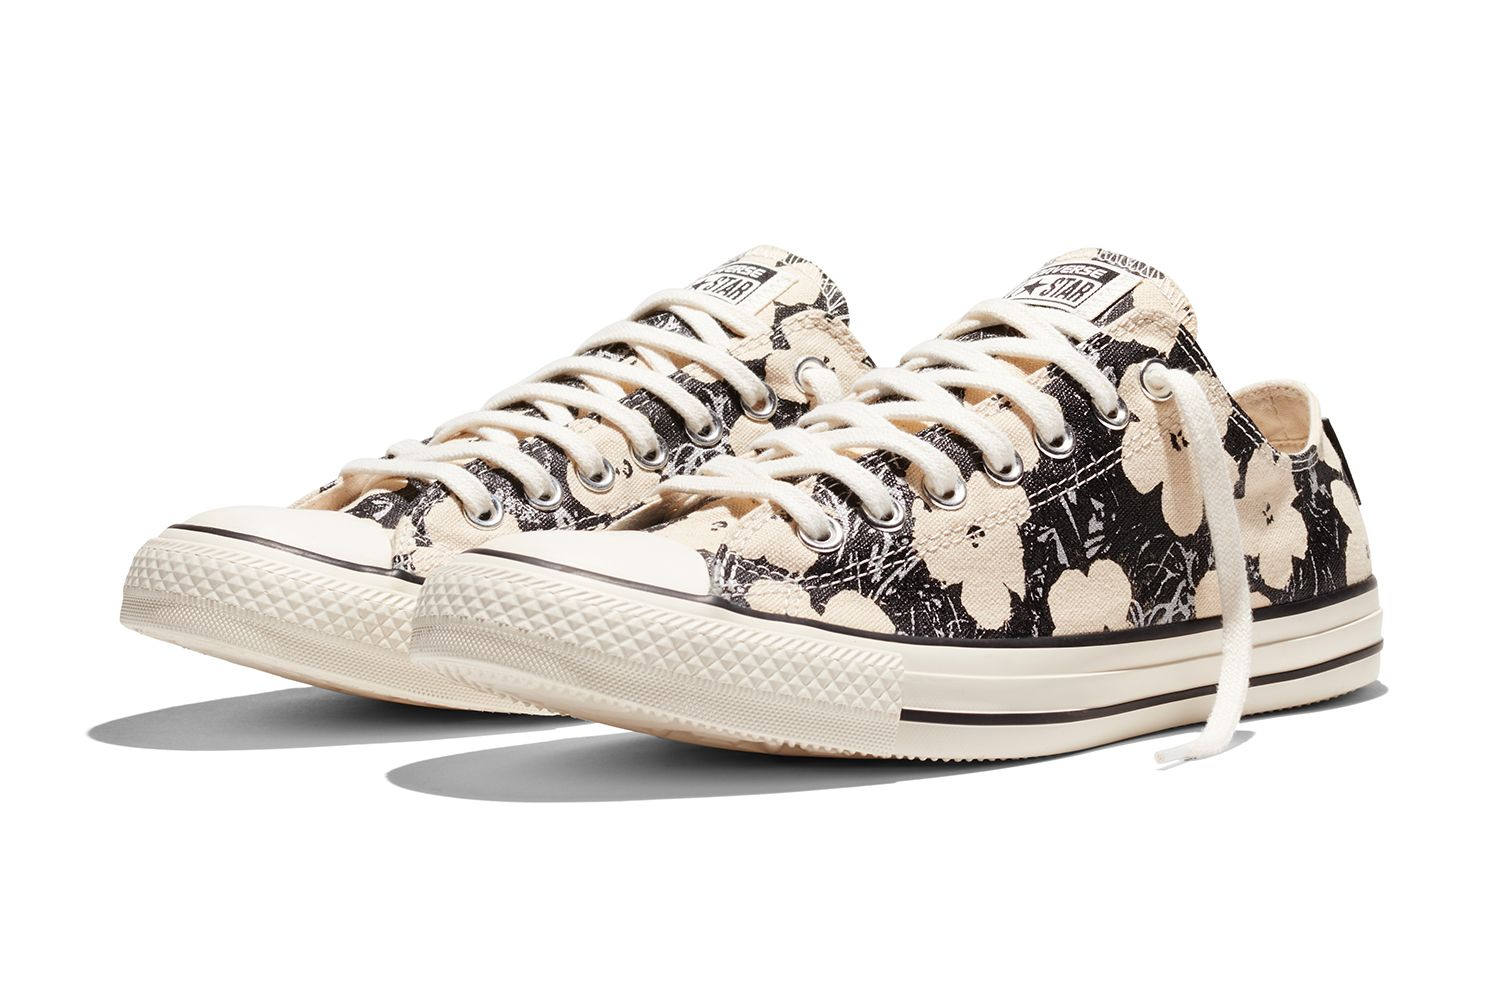 fc93669a7bf8d3 Converse returns with a new collection of footwear and apparel featuring  artwork by Andy Warhol.